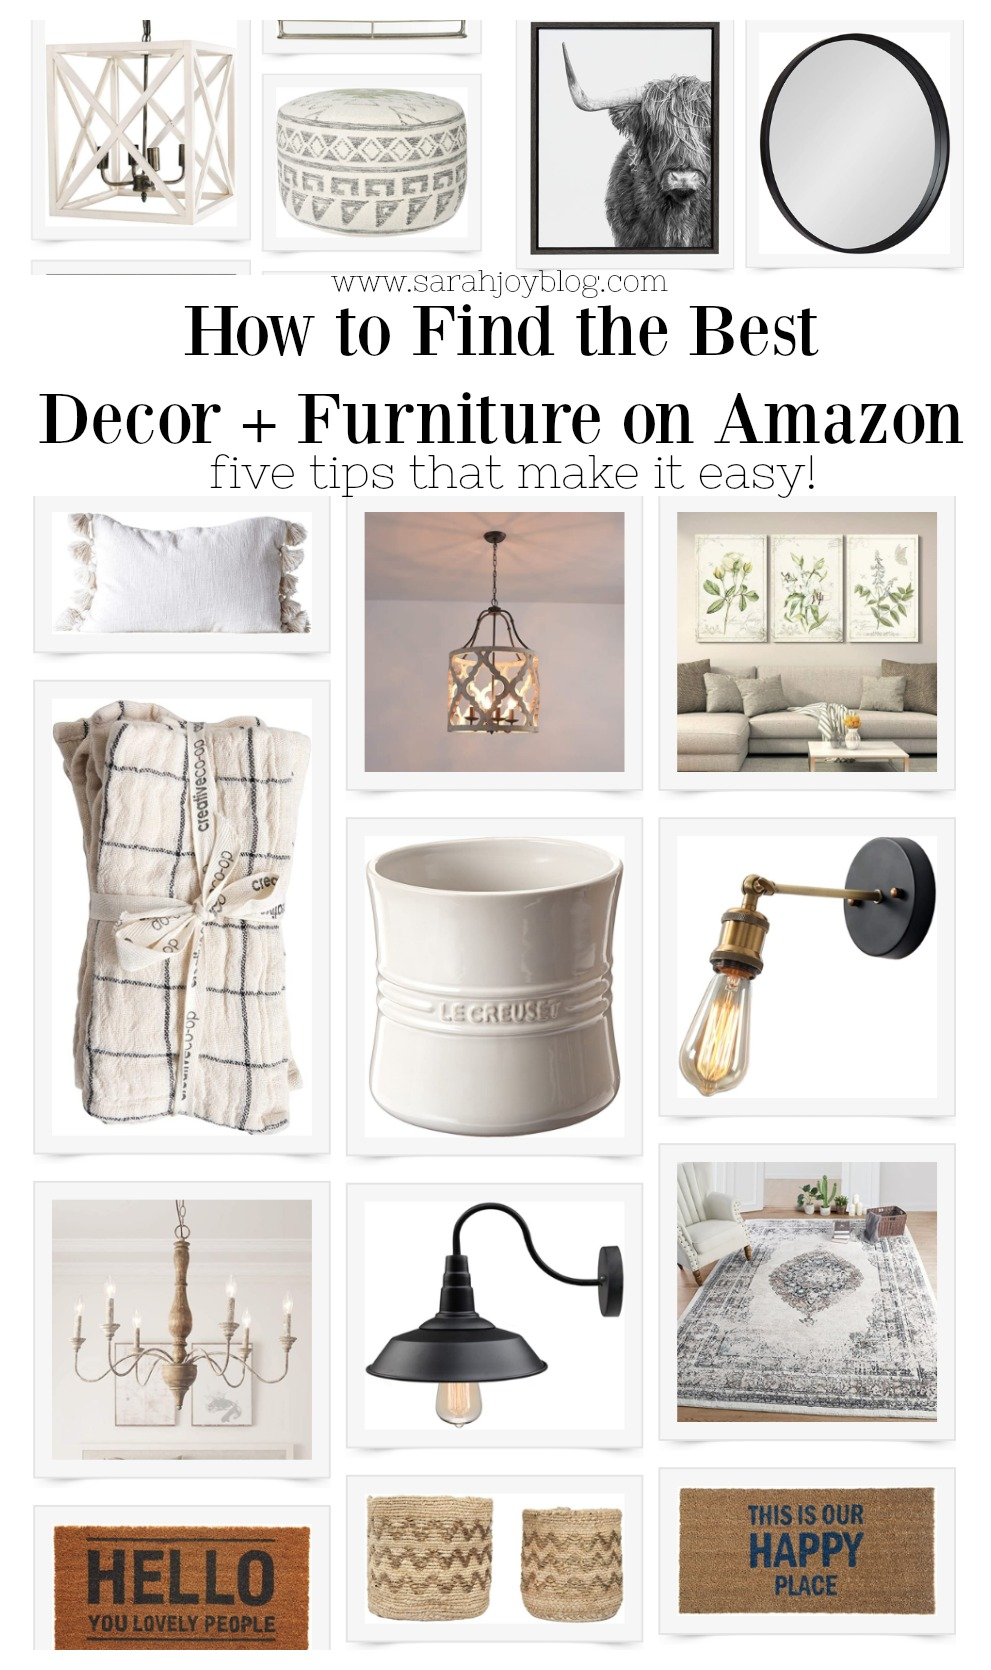 How to Find the Best Decor and Furniture on Amazon